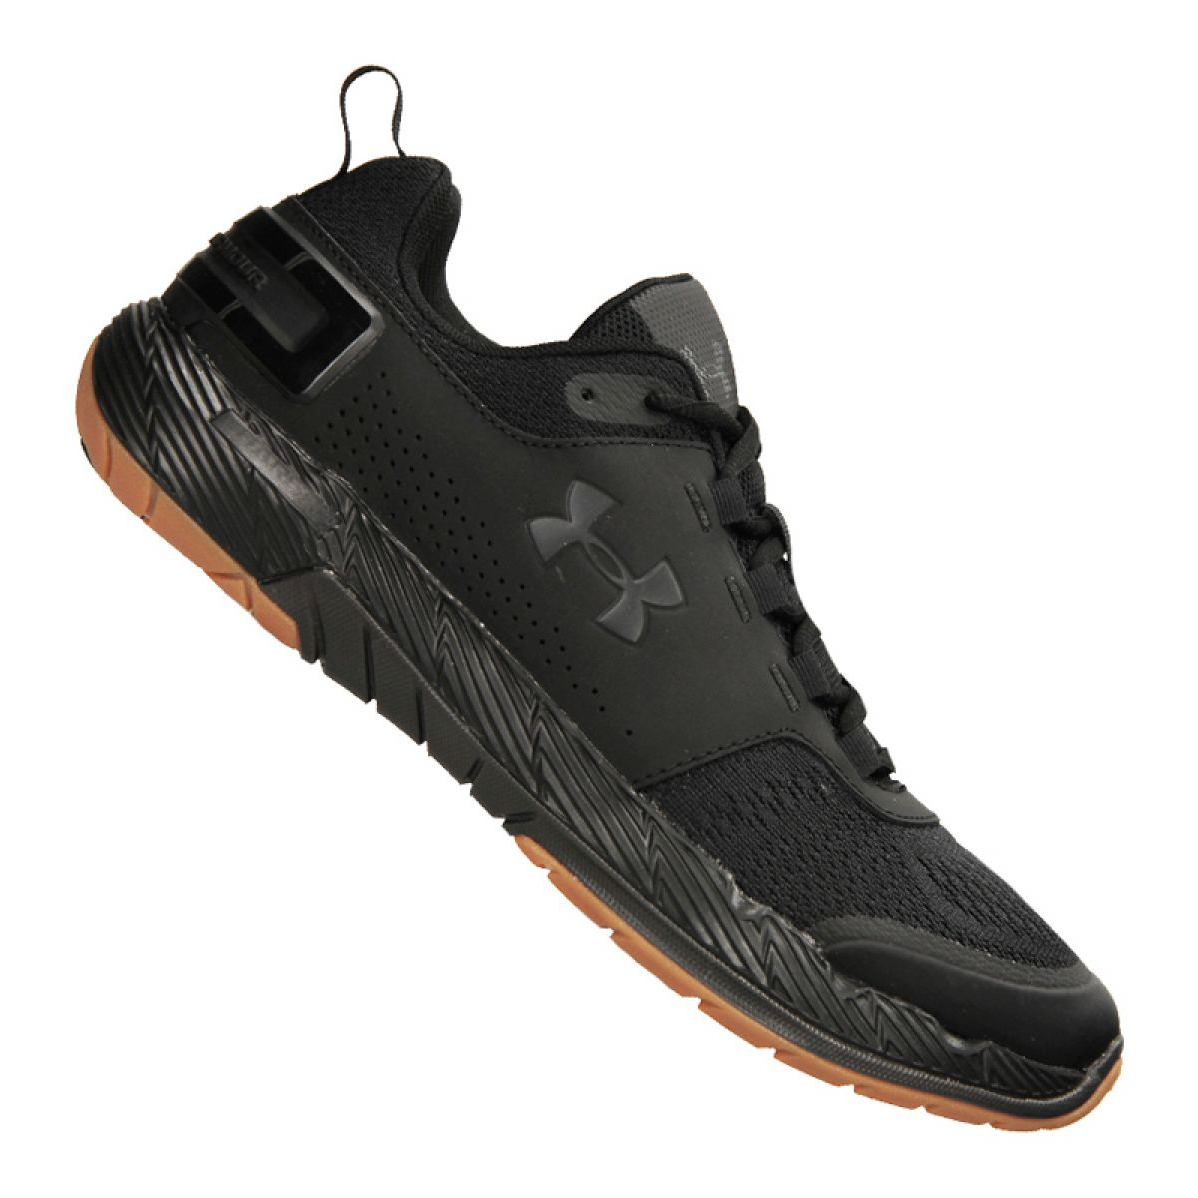 on sale ce998 640ff Details about Under Armour black Under Armor Commit Tr Ex M training shoes  3020789-007